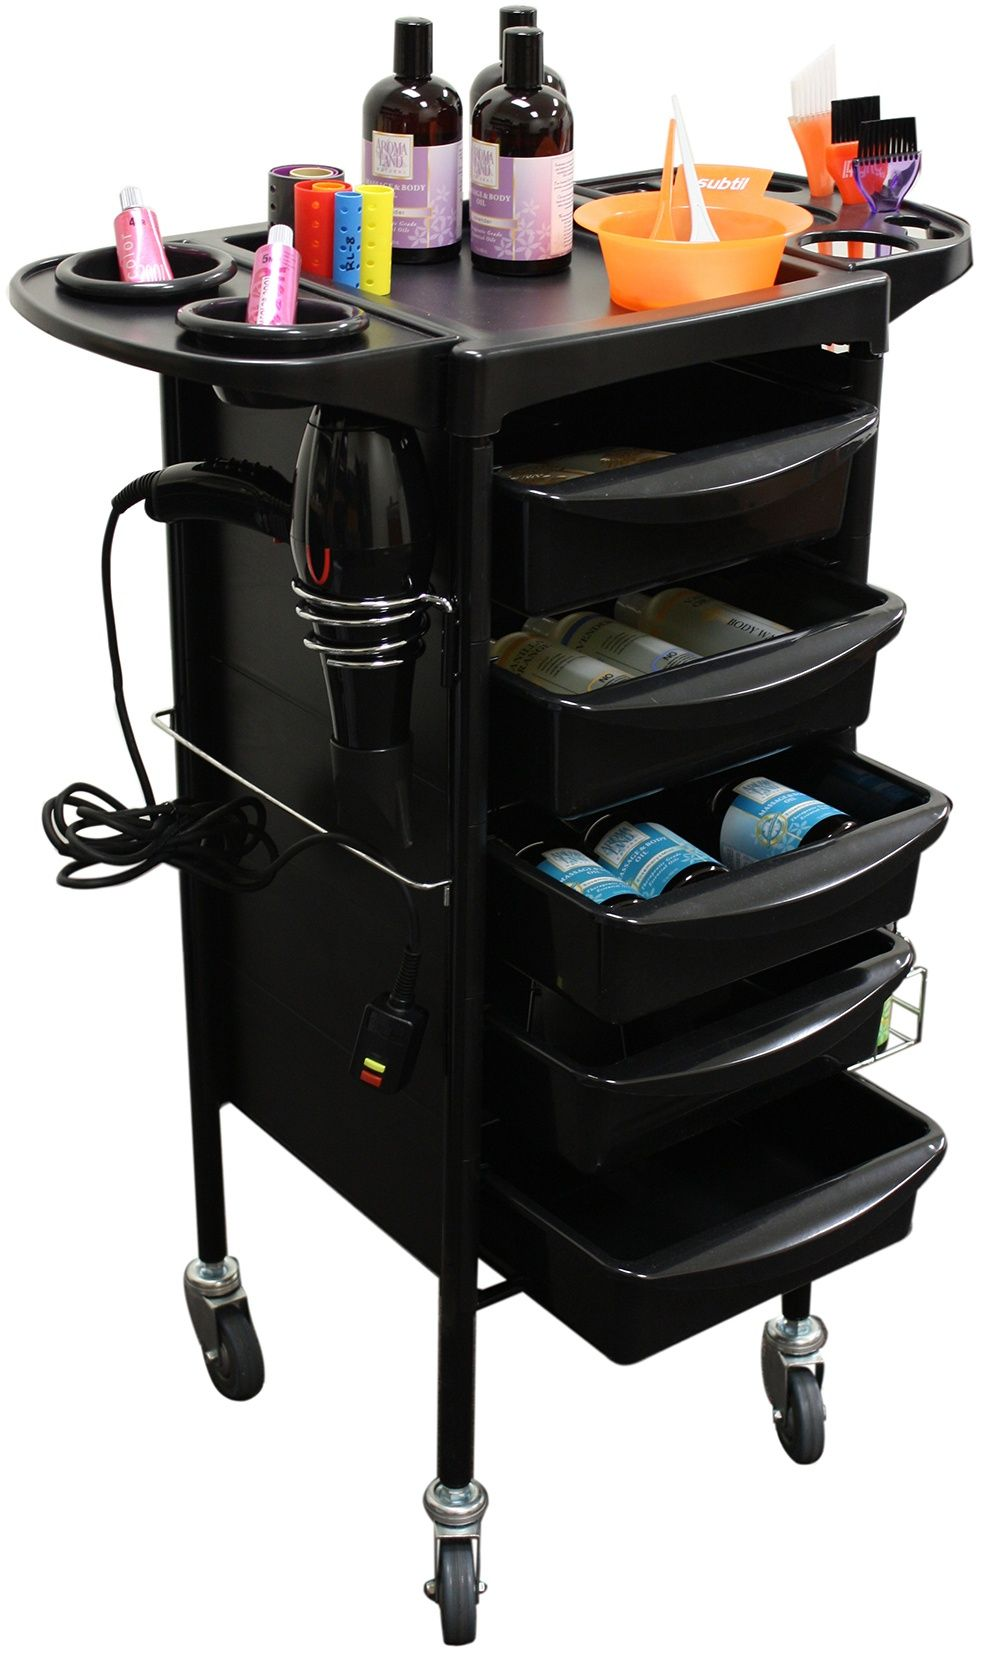 Mobile Storage Cabinets and Trolleys for your Hair, Nail Salon, Spa, or Beauty Shop | CCI Beauty